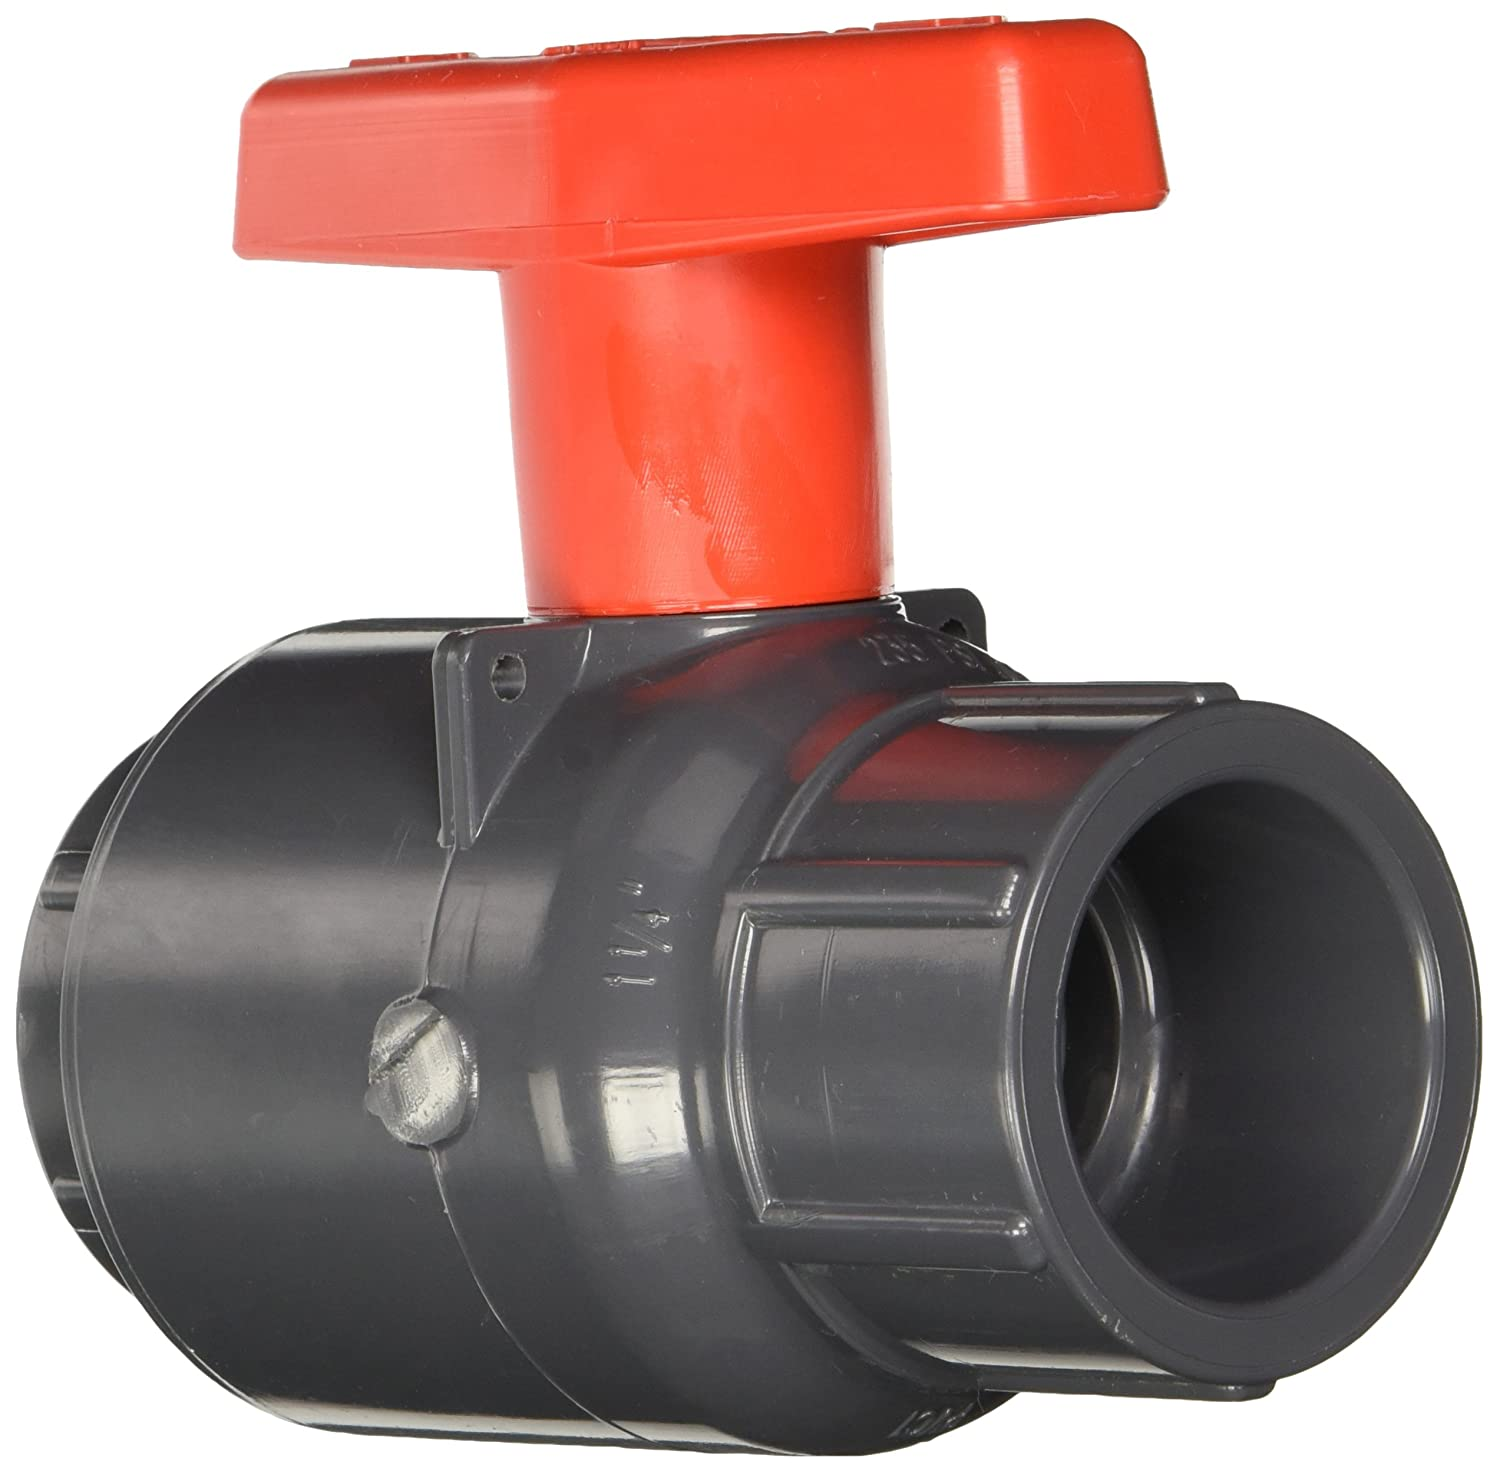 Spears 2132-012 PVC Schedule 80 Compact Ball Valves